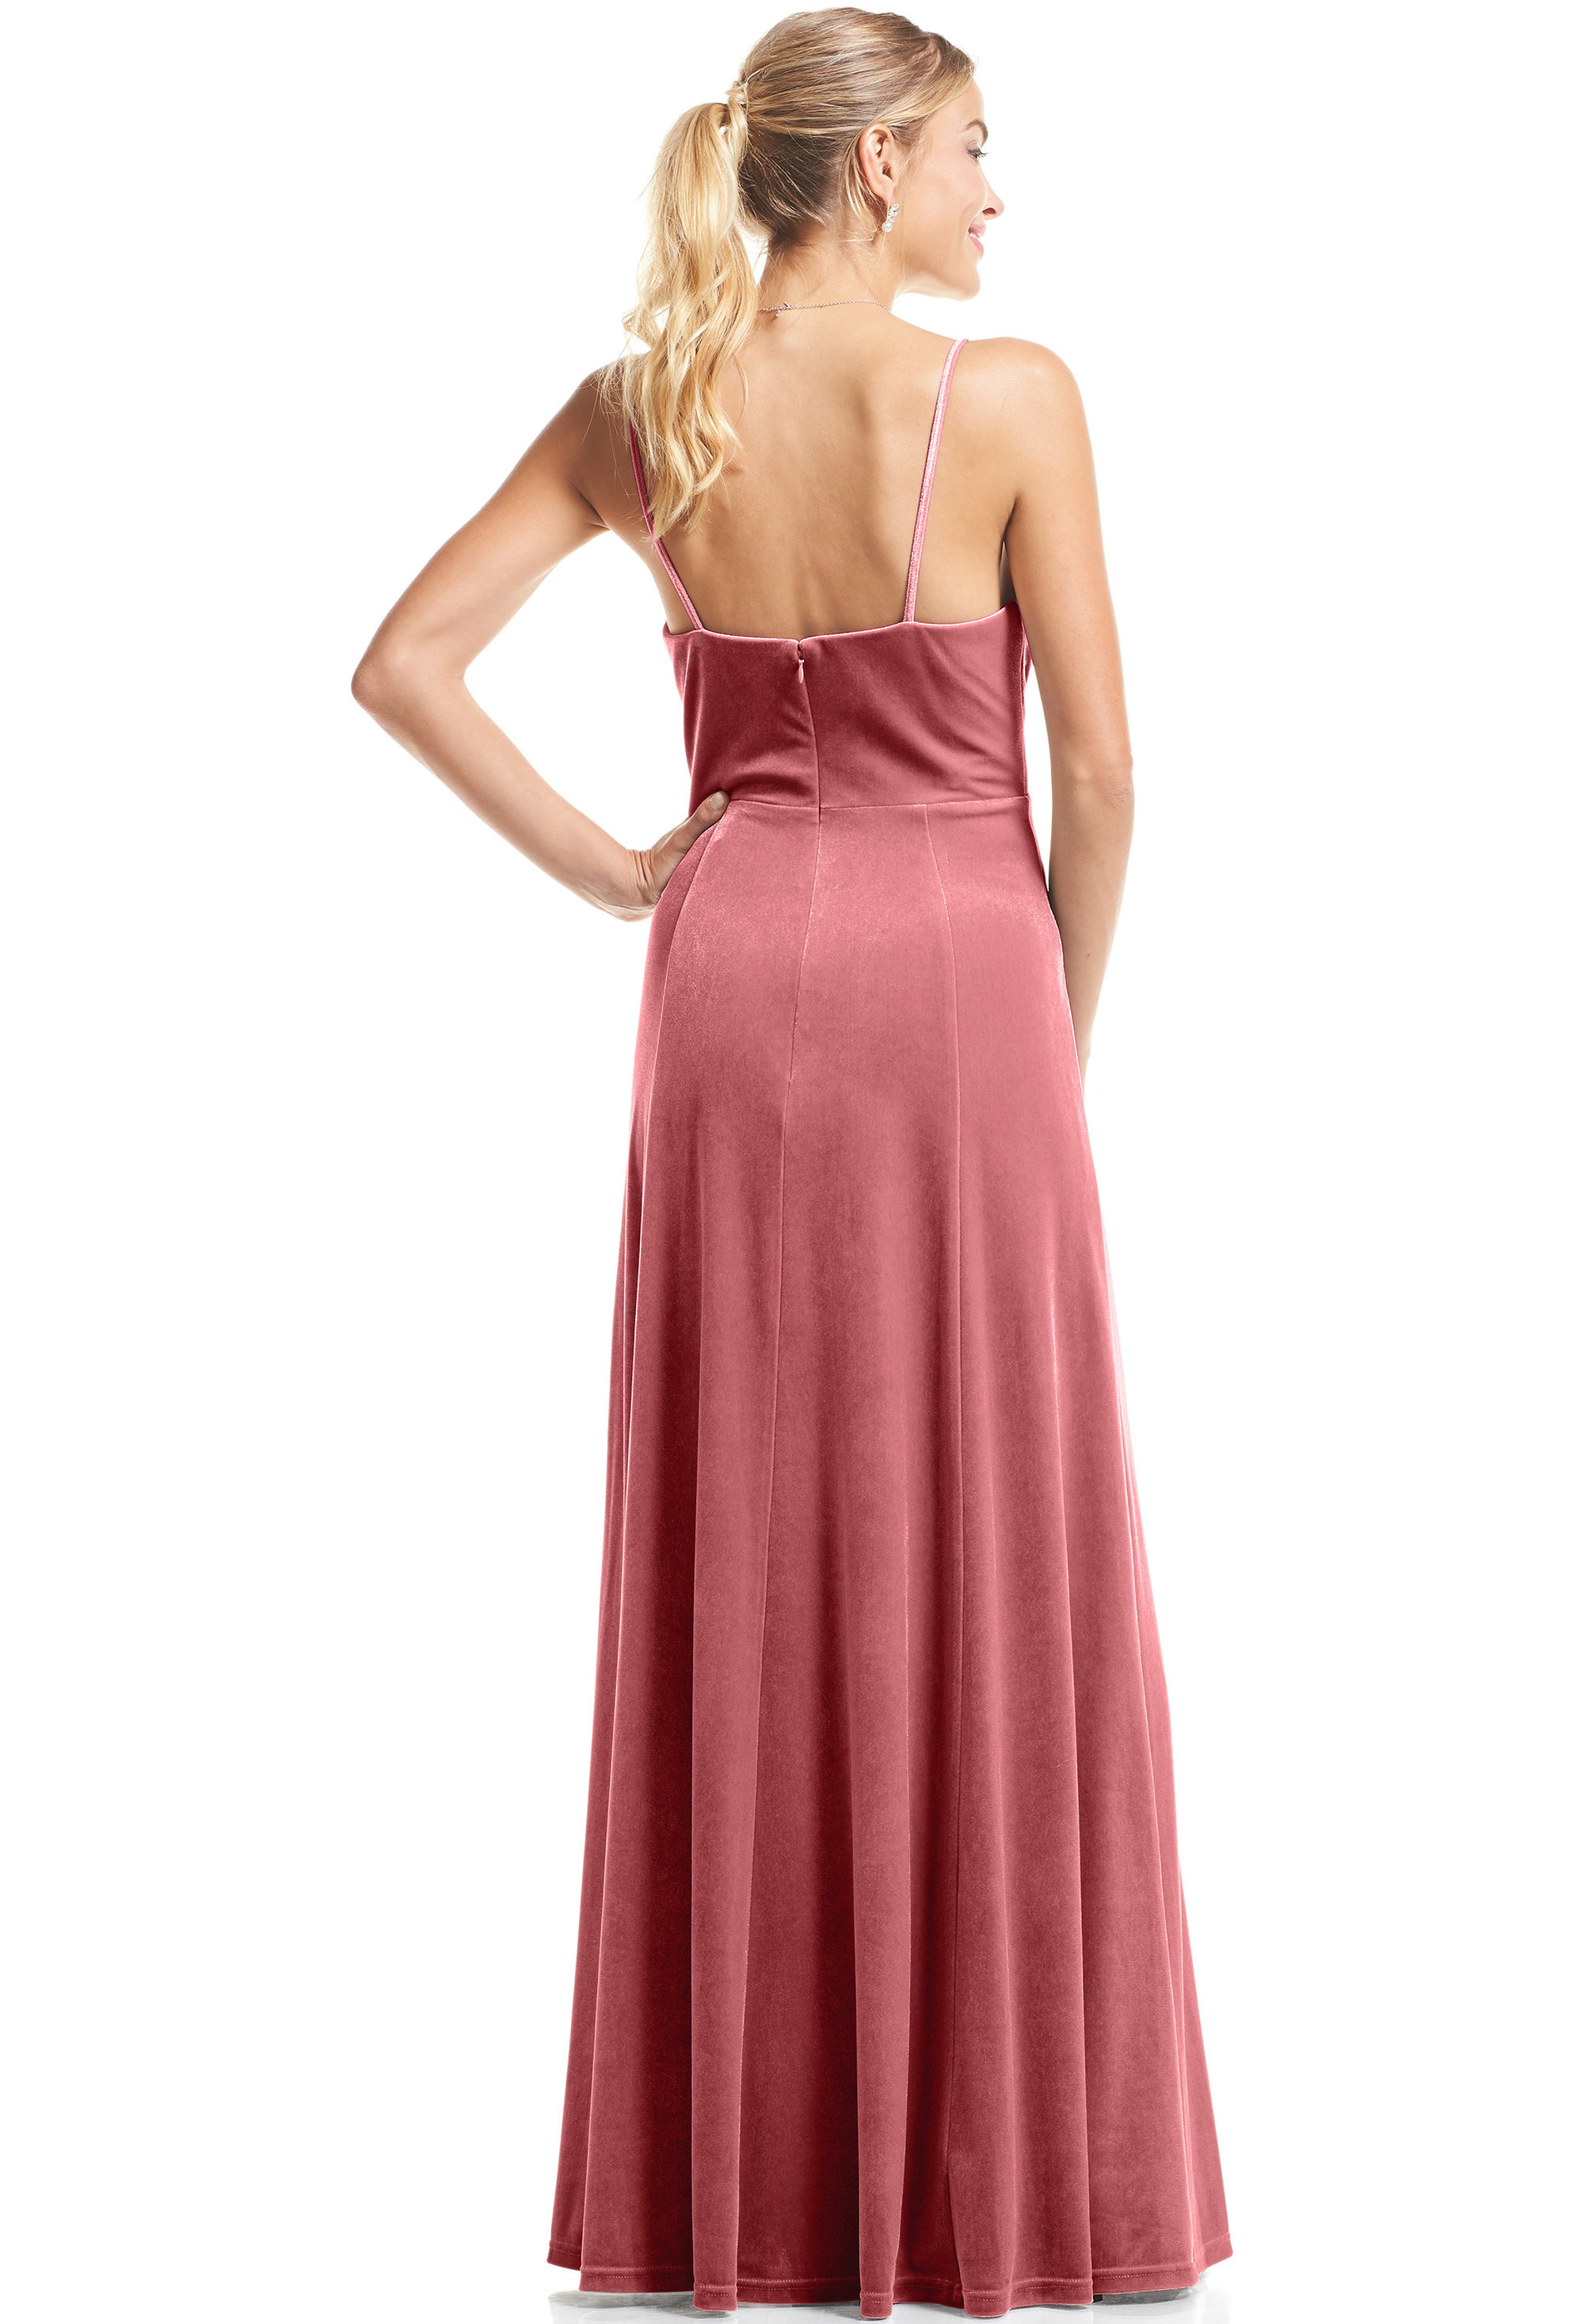 Bill Levkoff ROSE Chiffon, Lace V-neck A-Line gown, $99.00 Back